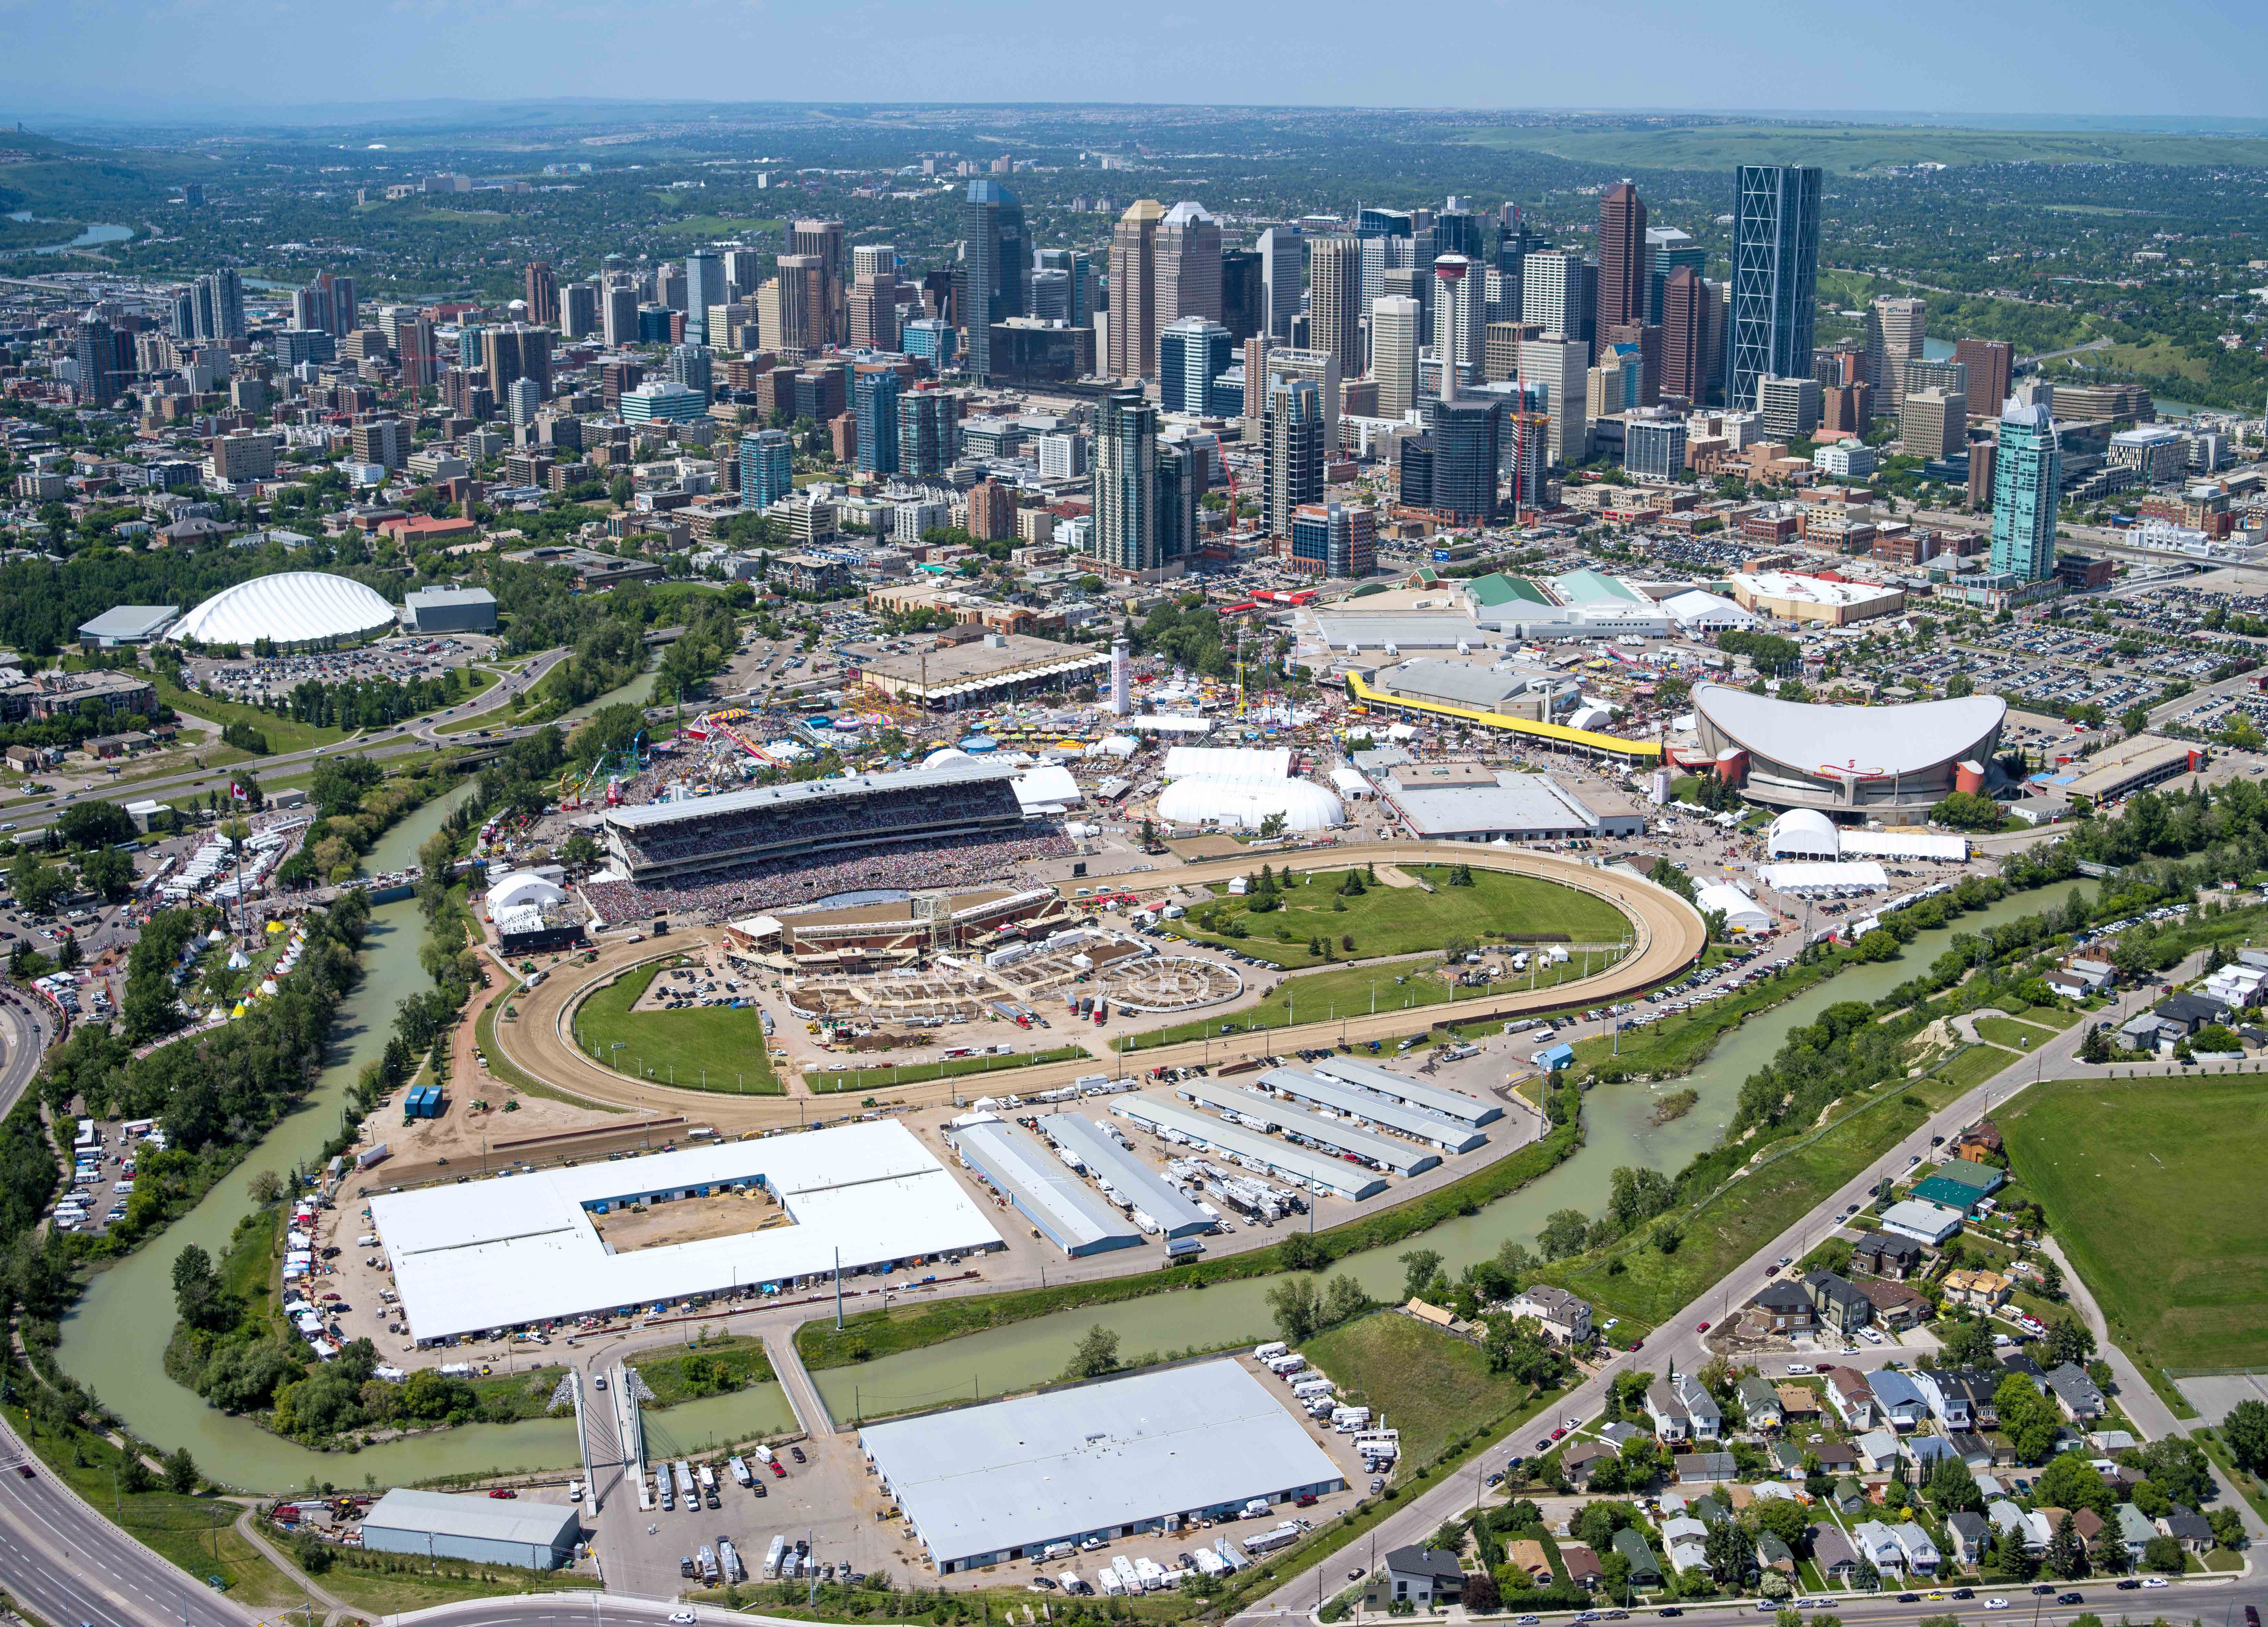 The grounds of the Calgary Stampede is shown in this aerial photo with 6999x5020